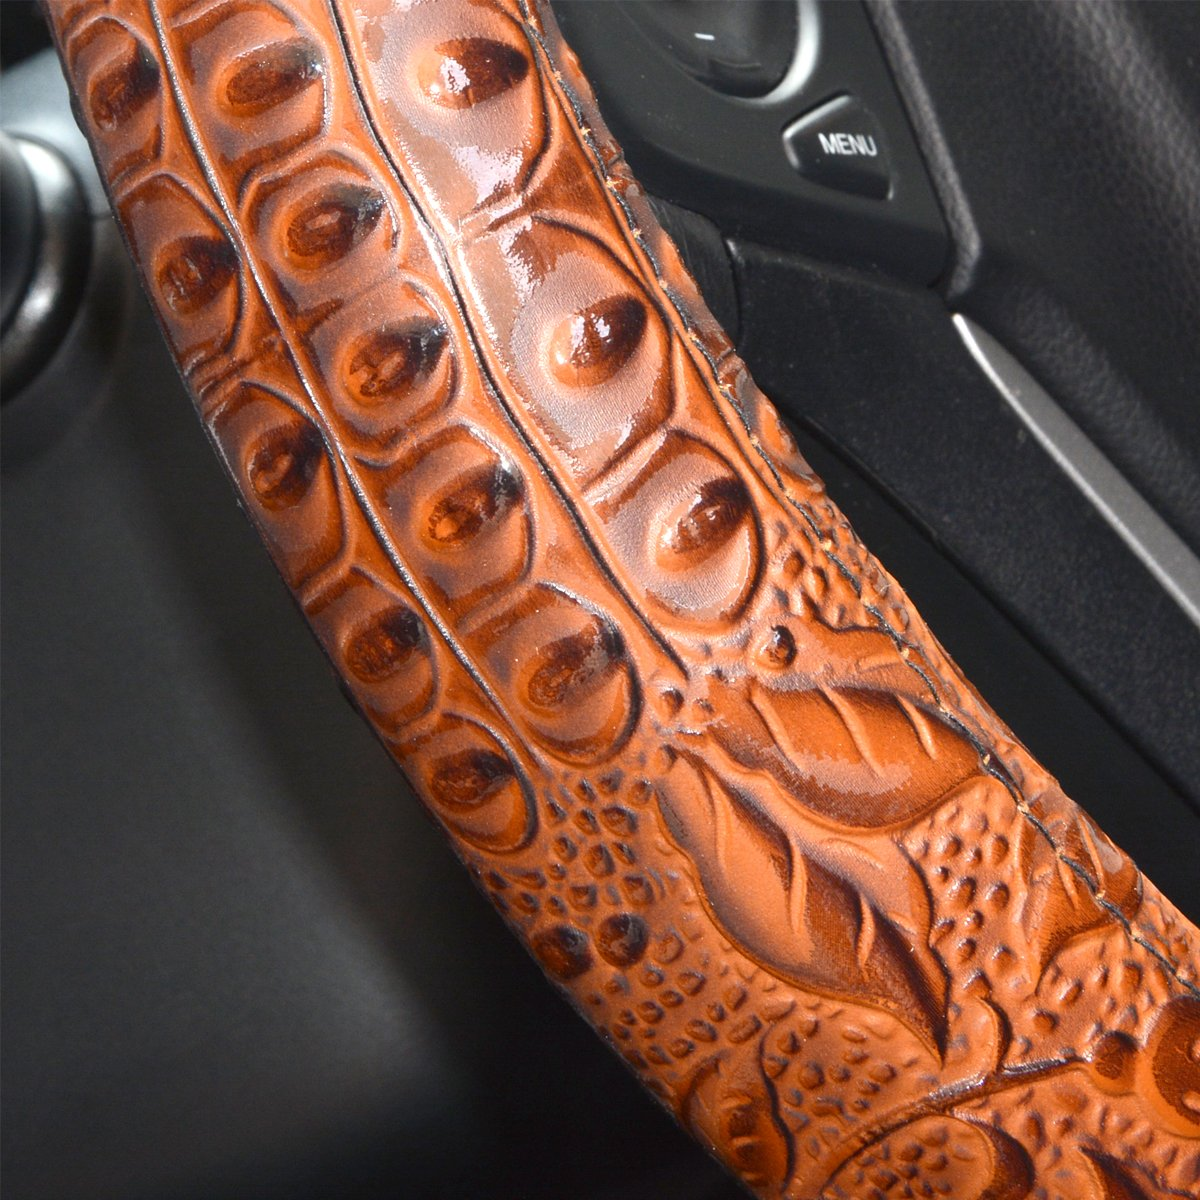 ZYHW Car Steering Wheel Cover Universal 15 Inch Middle Size Auto Anti-Slip Leather Wheel Protector with Flower Grain Design Blue Style